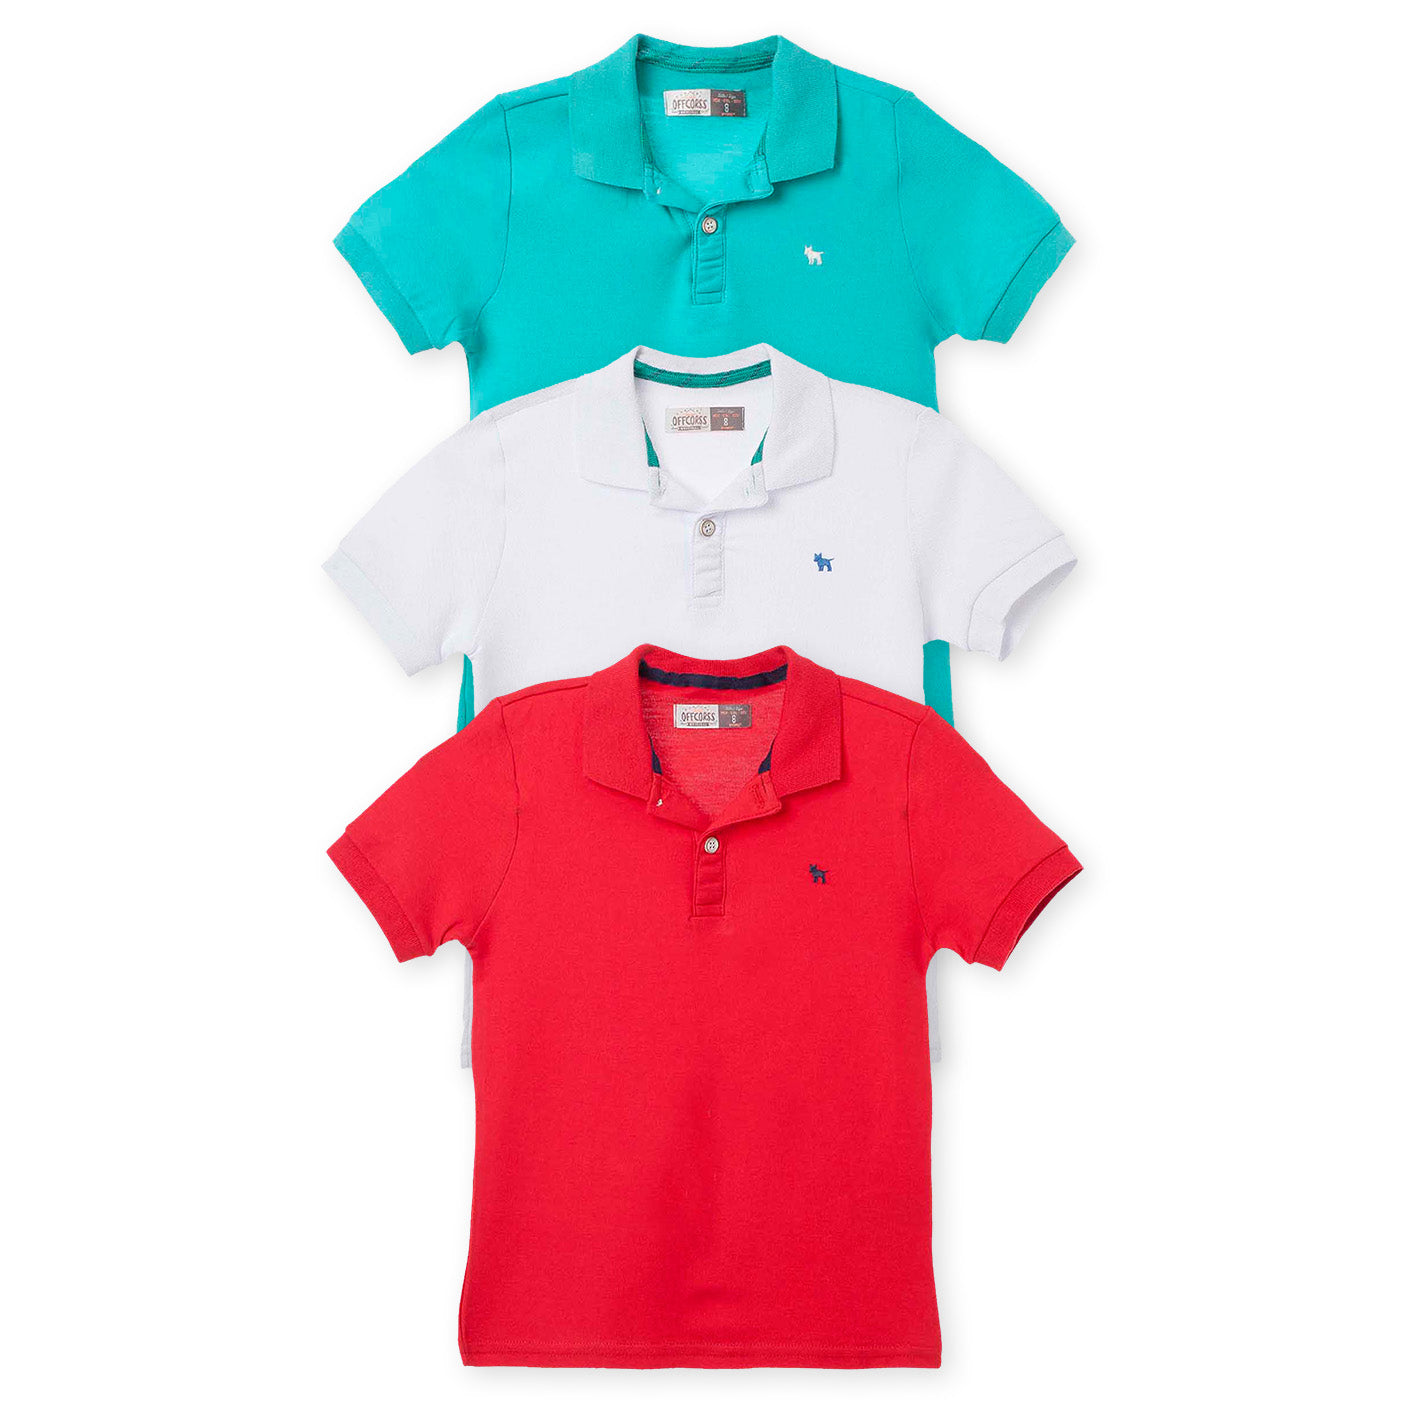 bb14375321 Polo Shirt Solid Colors Clothing Kids 3Pack